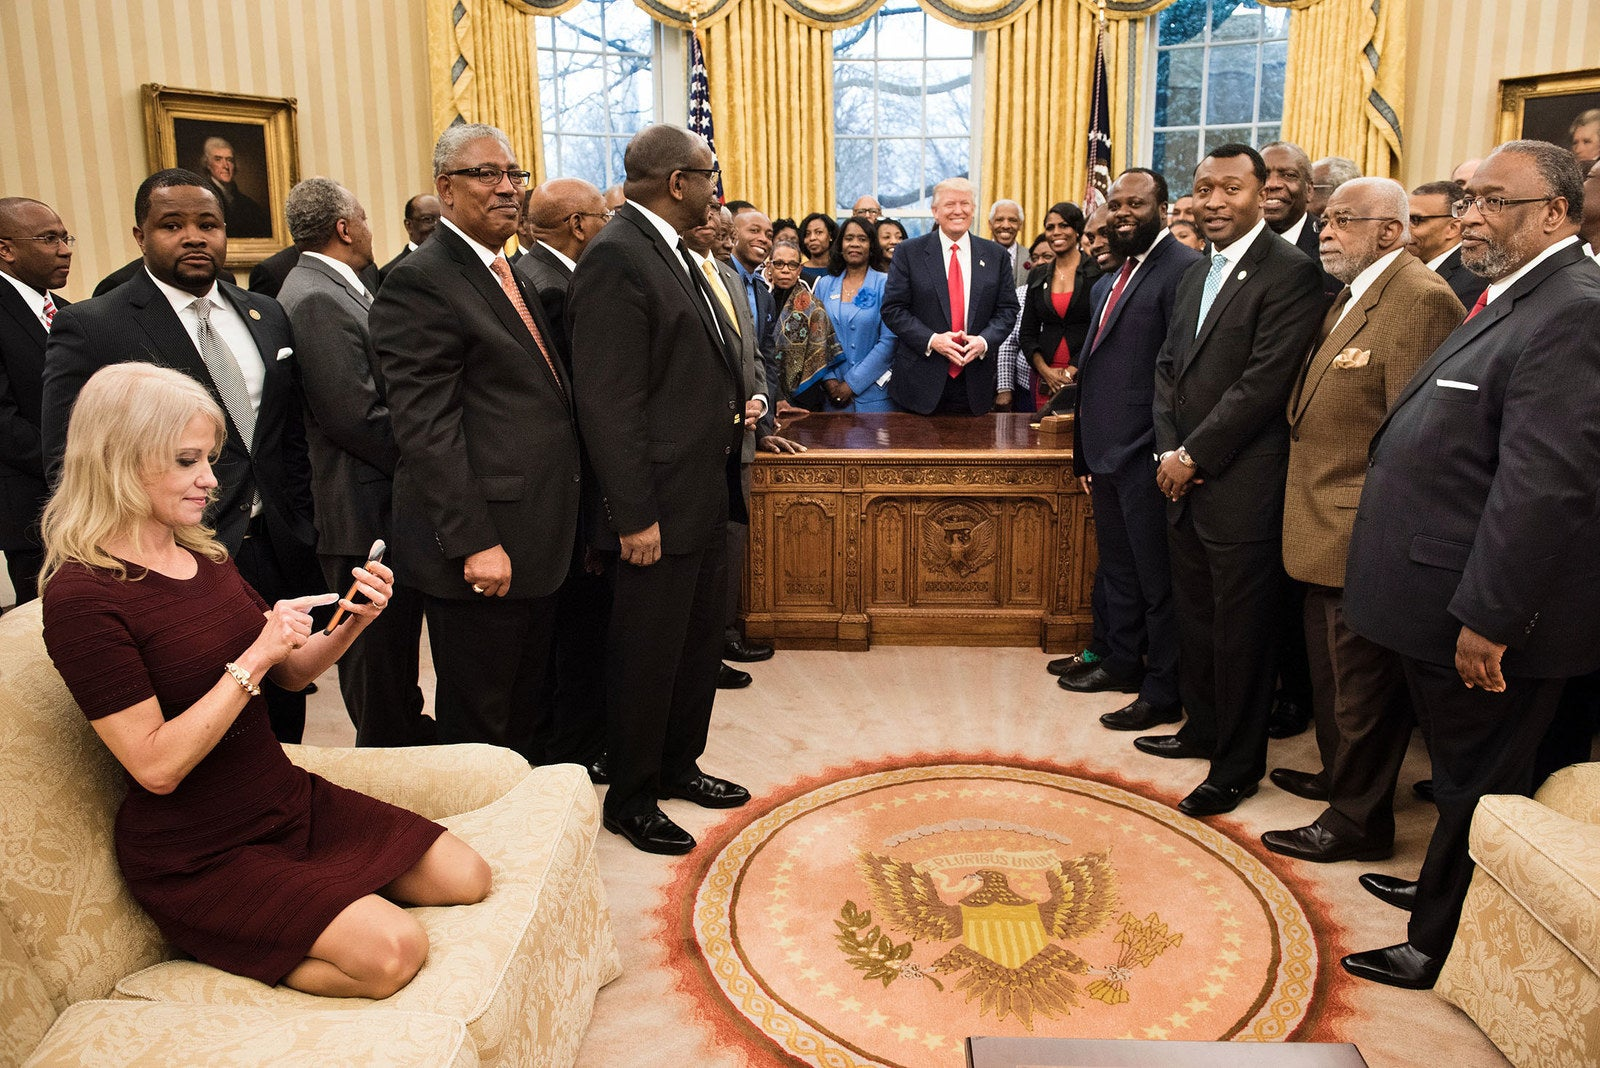 Kellyanne Conway, counselor to the president, checks her phone as President Donald Trump and leaders of historically black colleges and universities pose for a group photo in the Oval Office on Feb. 27.